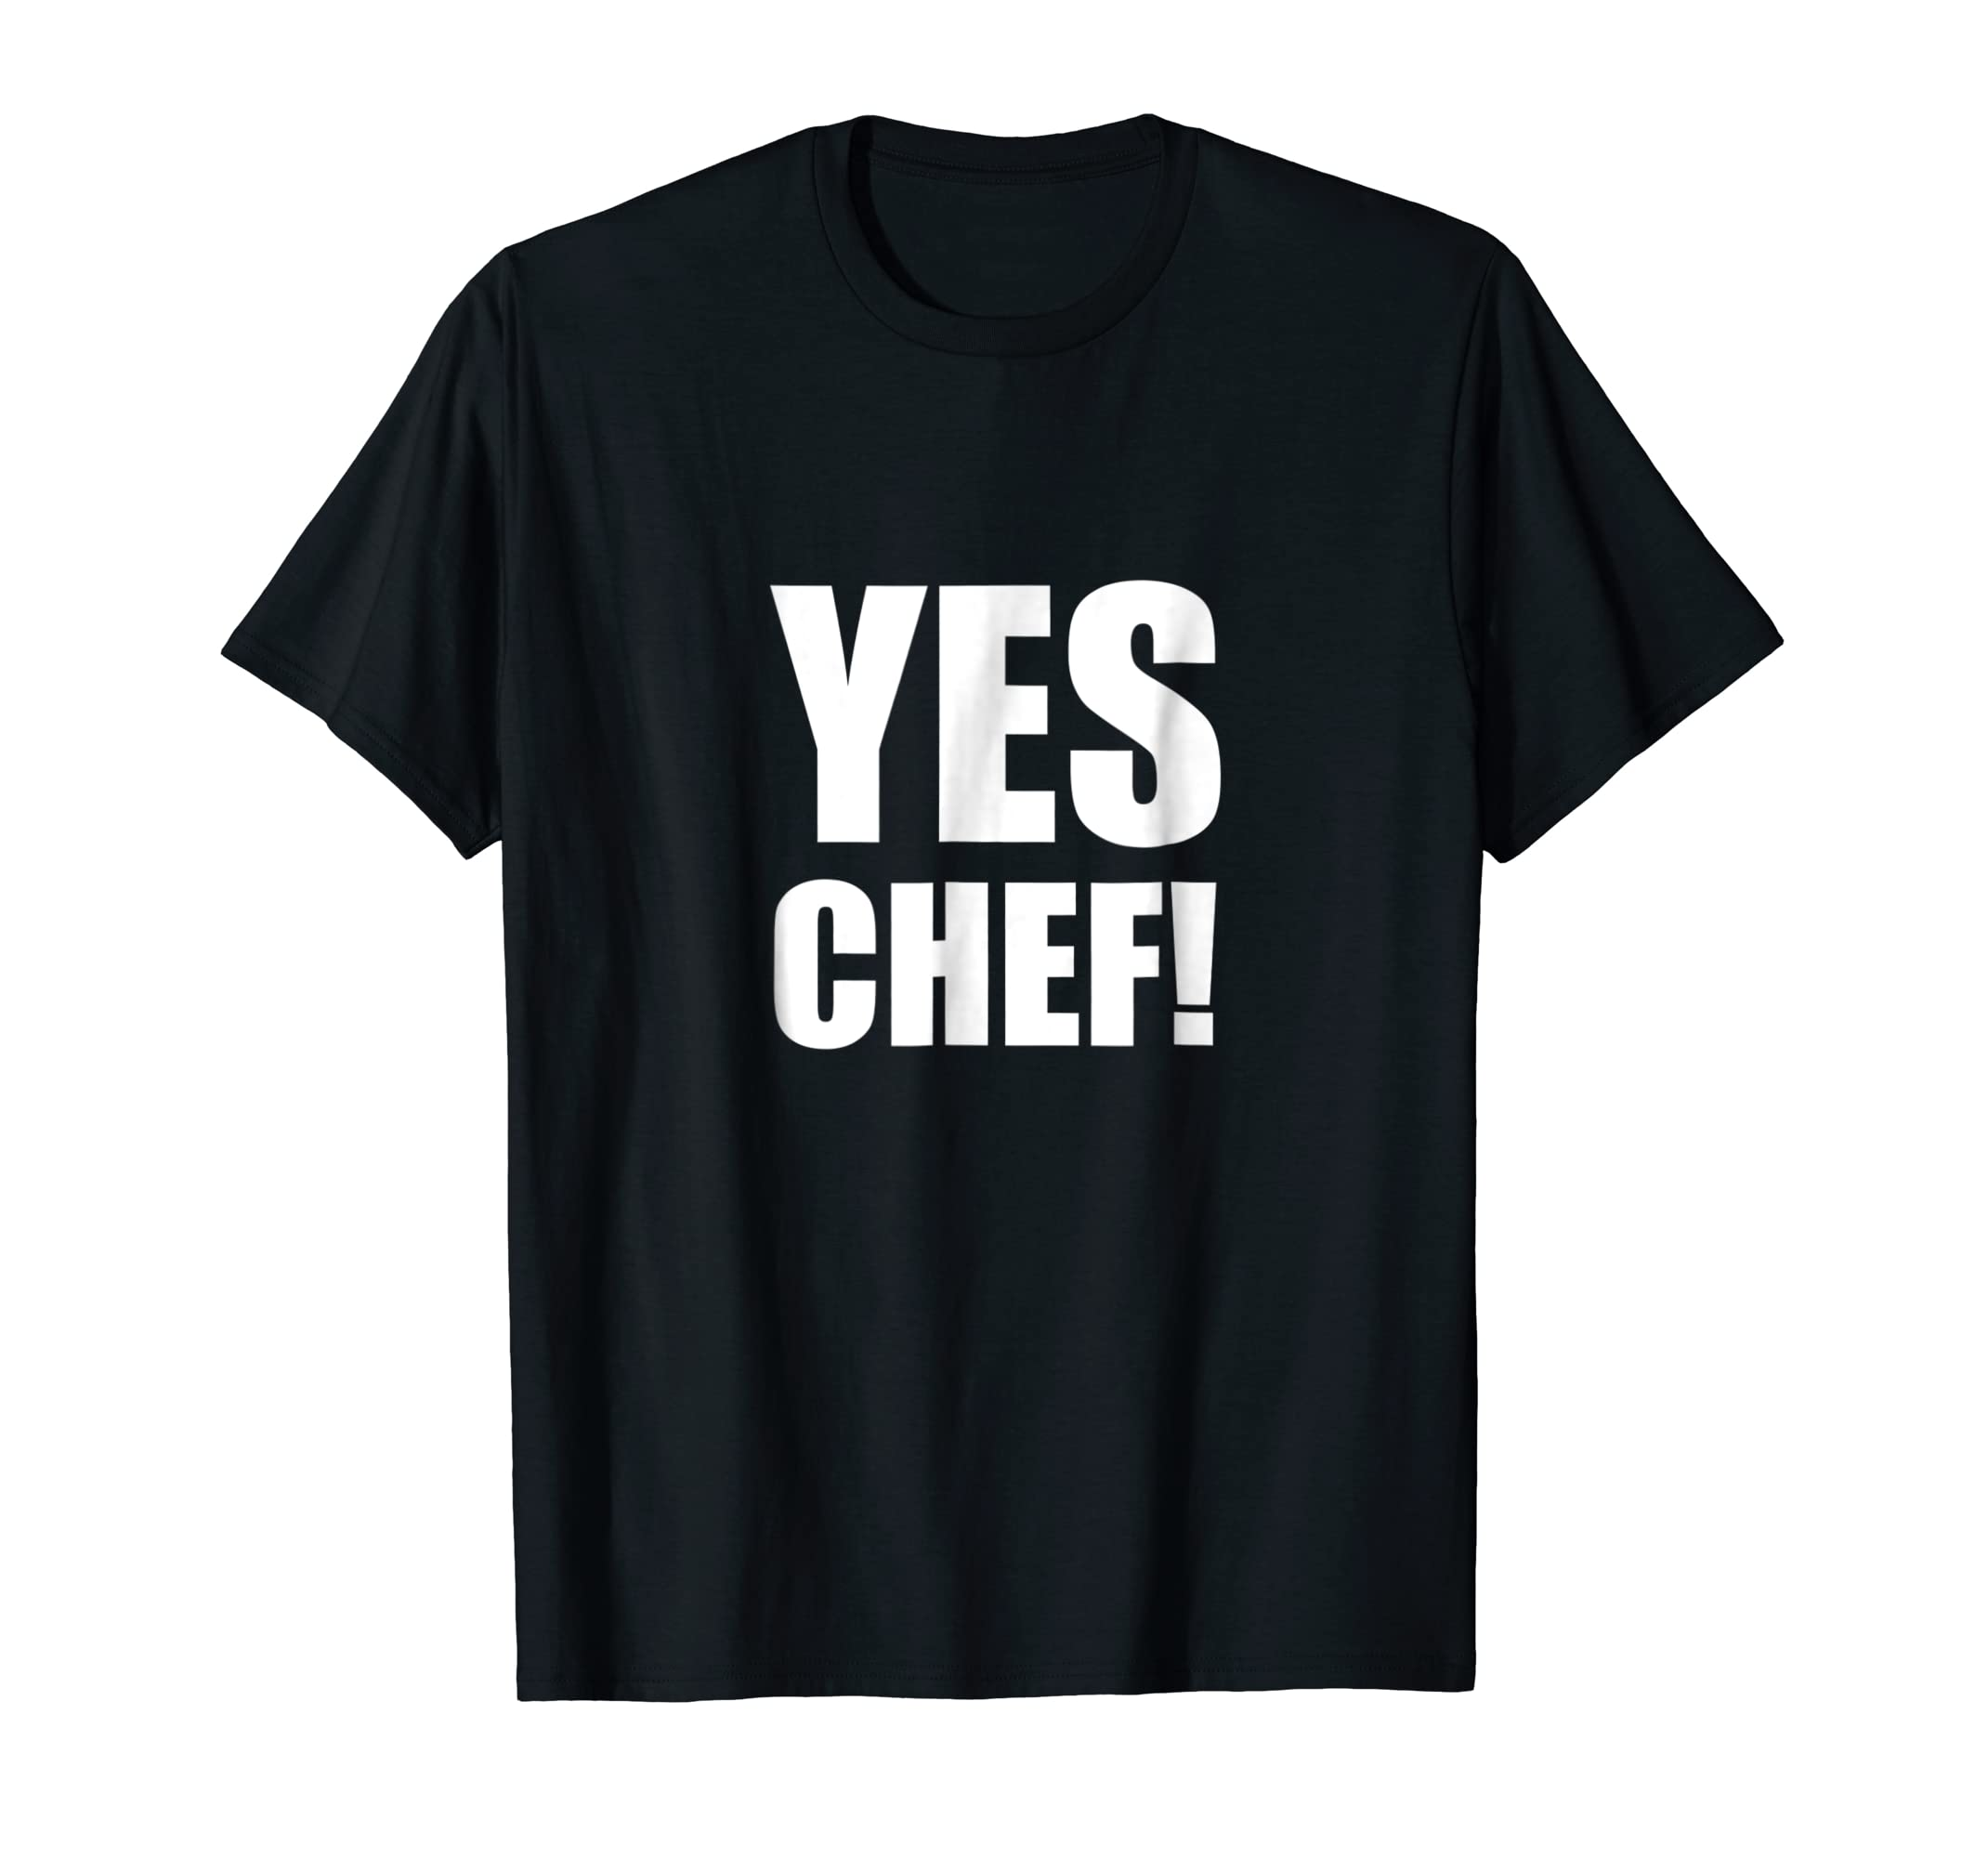 Funny Yes Chef! tshirt Christmas gift for women or men-azvn